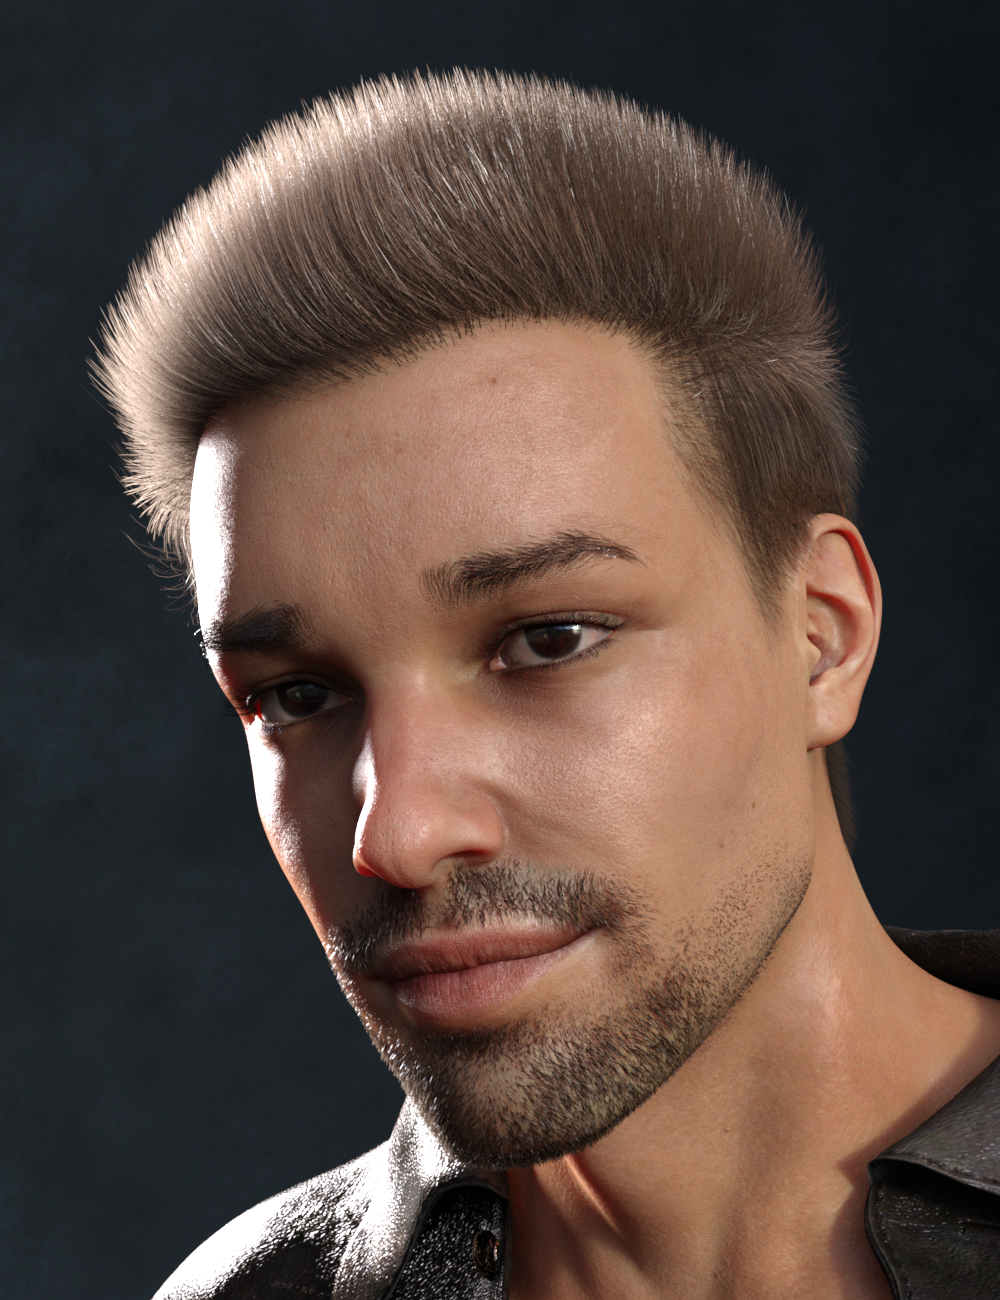 Wilson Hair for Genesis 8 Males by: Vyusur, 3D Models by Daz 3D